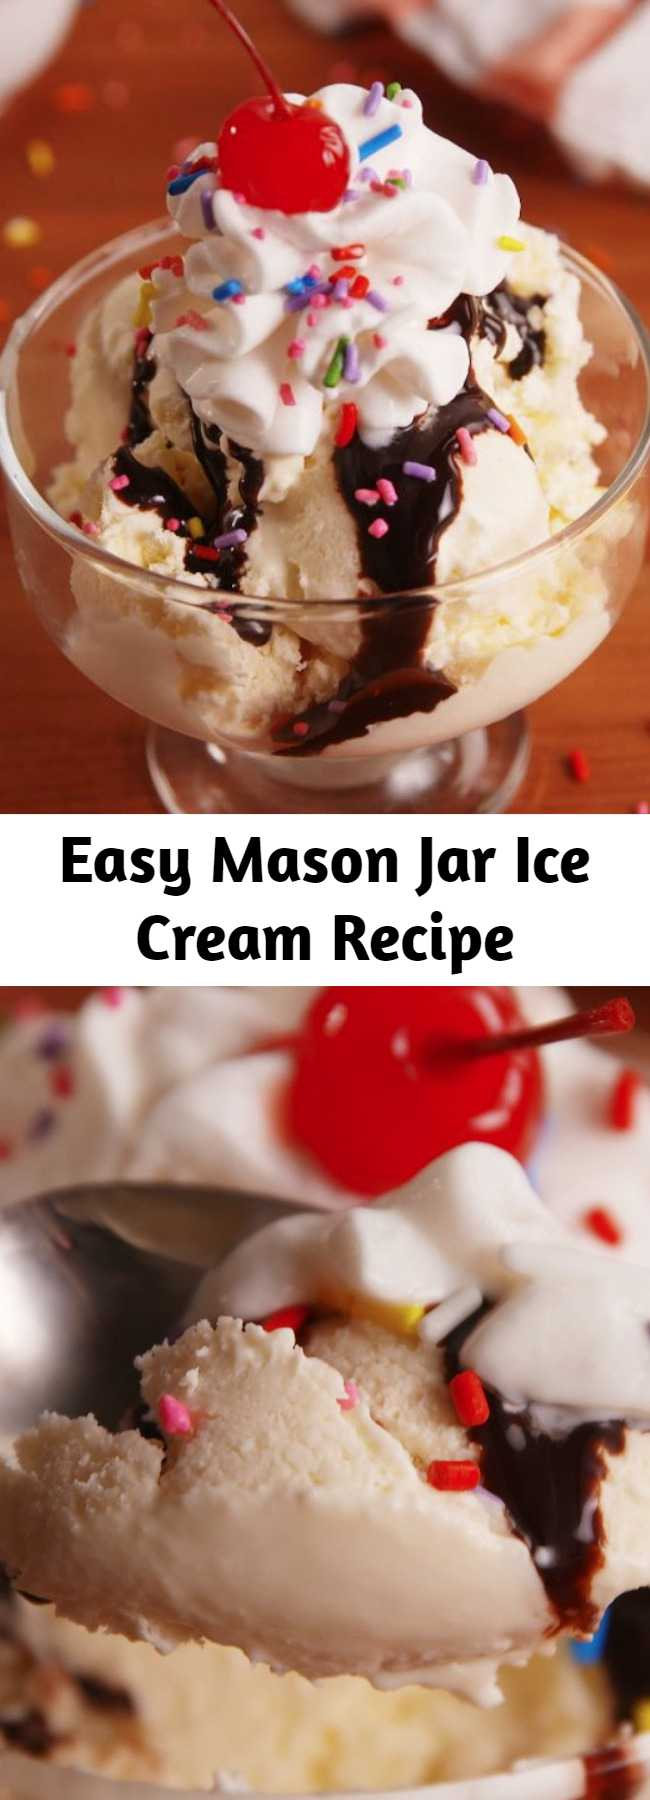 Easy Mason Jar Ice Cream Recipe - Easy to make homemade ice cream with just 4 ingredients. All you need to make this mason jar ice cream is a little elbow grease. No need to scream for ice cream!